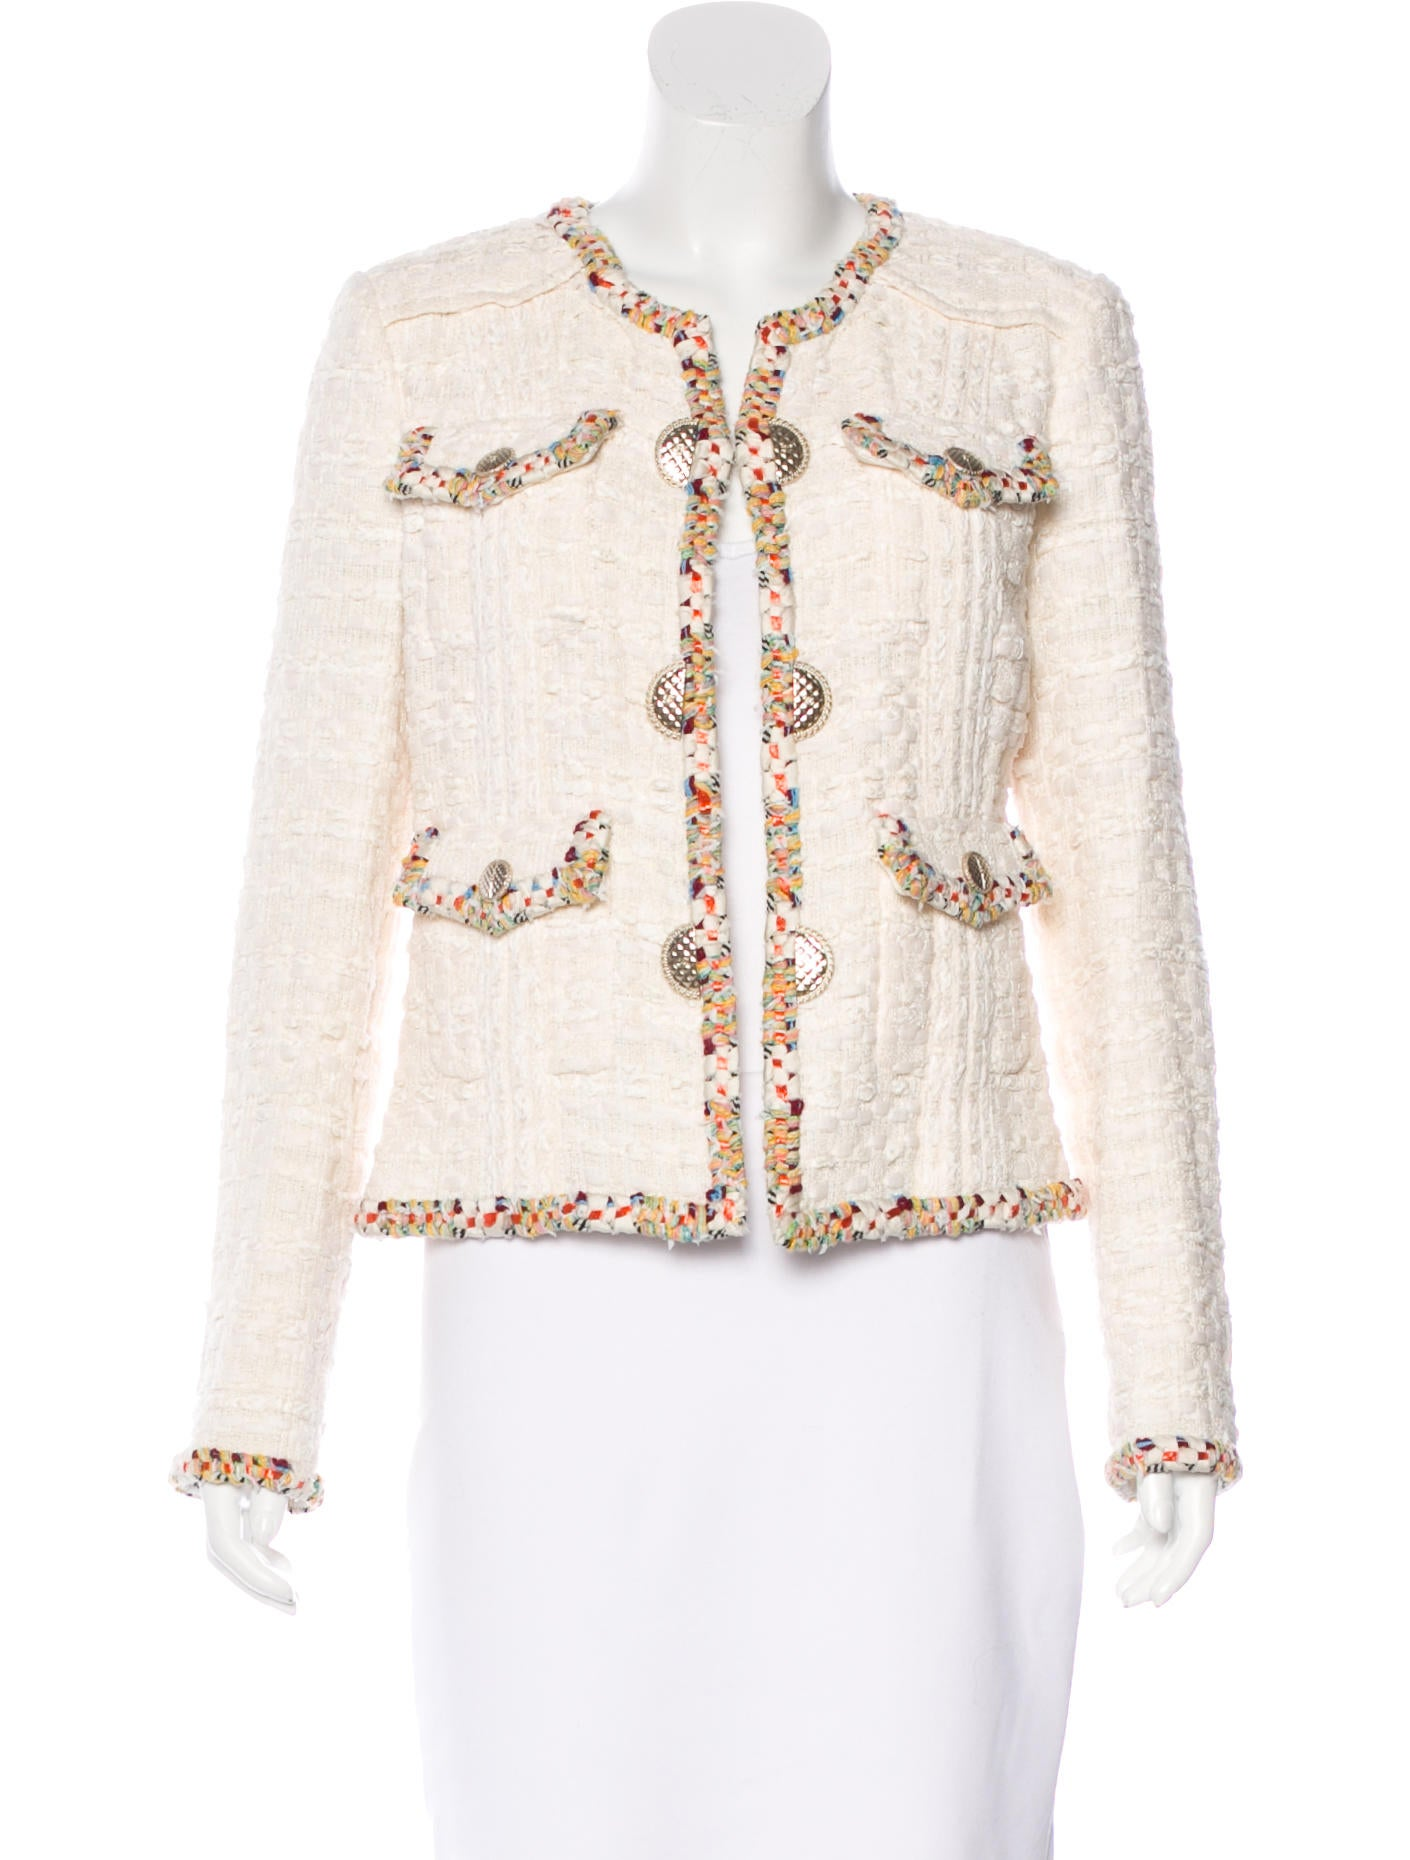 Dining Room Serving Tables Chanel 2017 Paris Cuba Tweed Jacket Clothing Cha151609